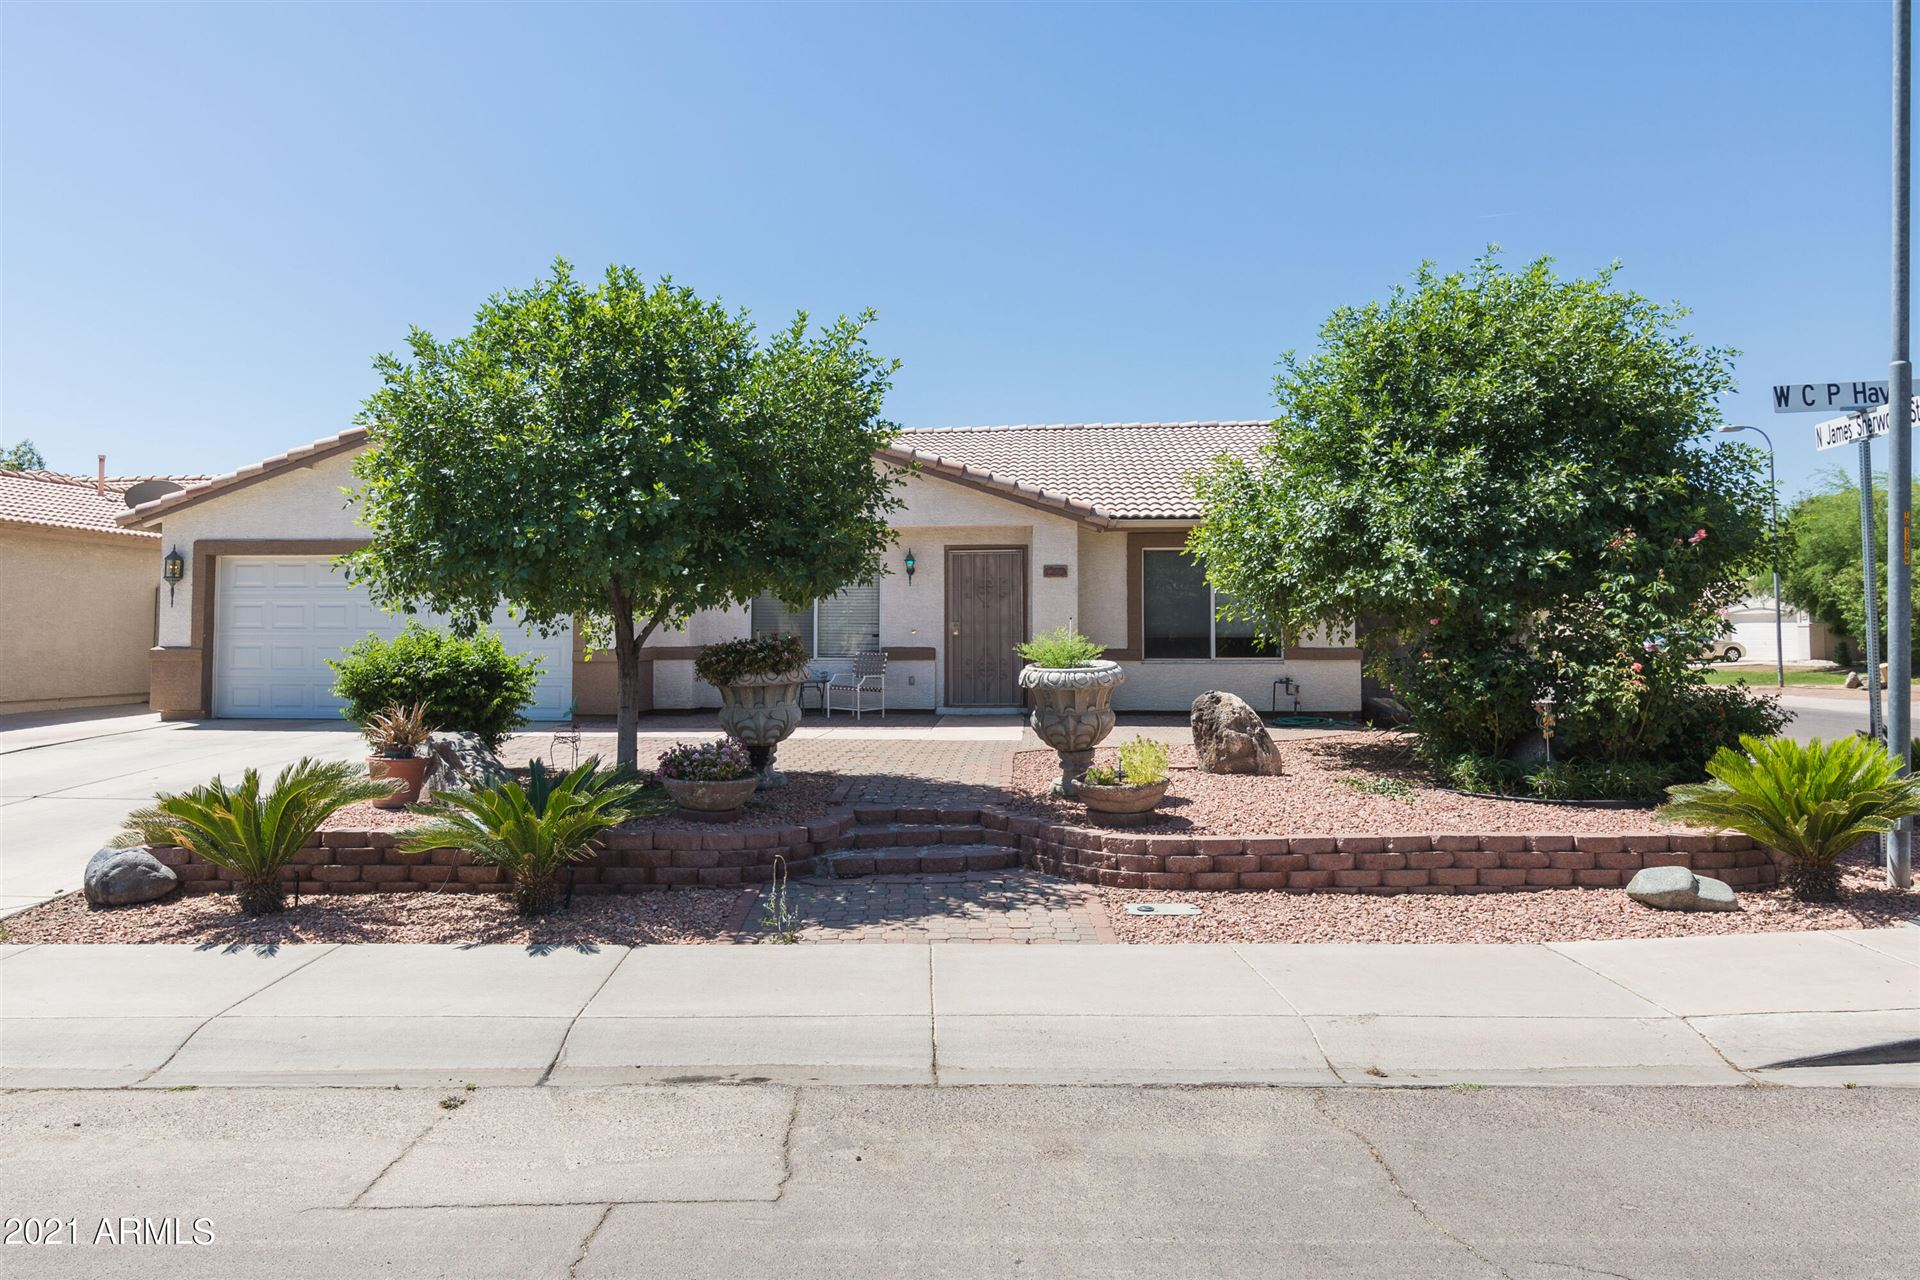 Photo of 8731 W C P HAYES Drive, Tolleson, AZ 85353 (MLS # 6231579)